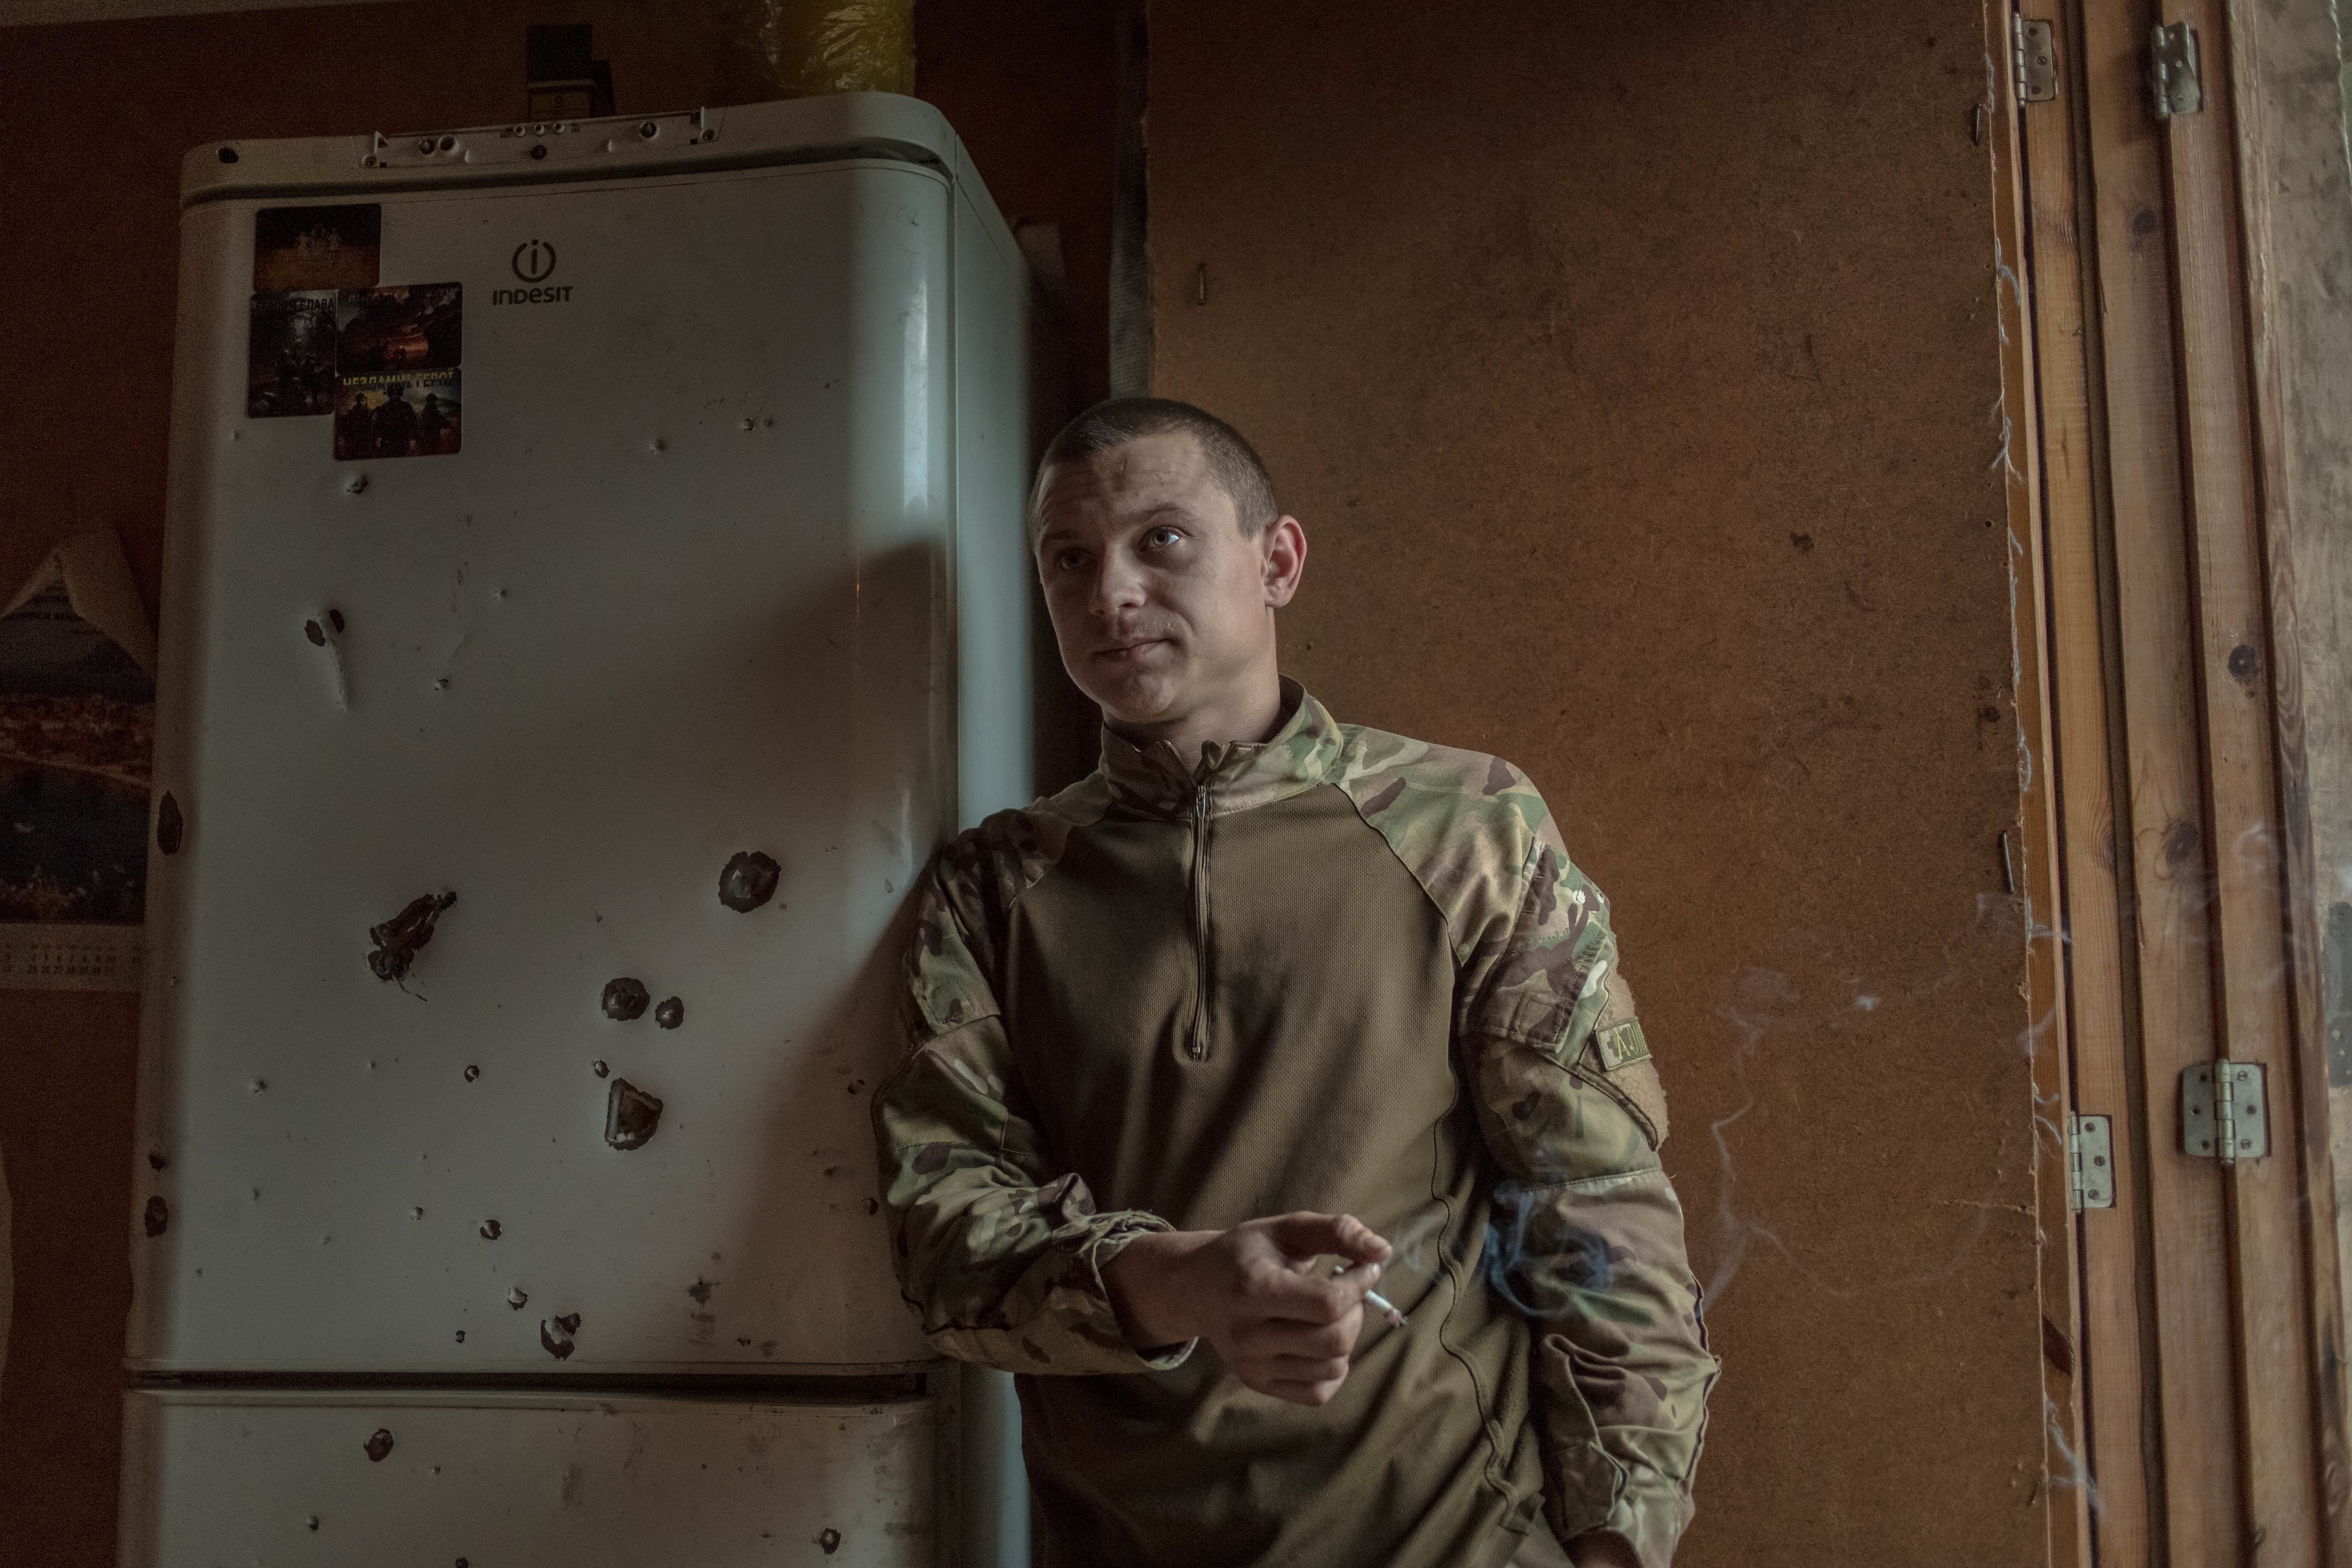 A volunteer soldier stands next to a bullet-ridden fridge. He says he joined the unit because he just wanted to fight.